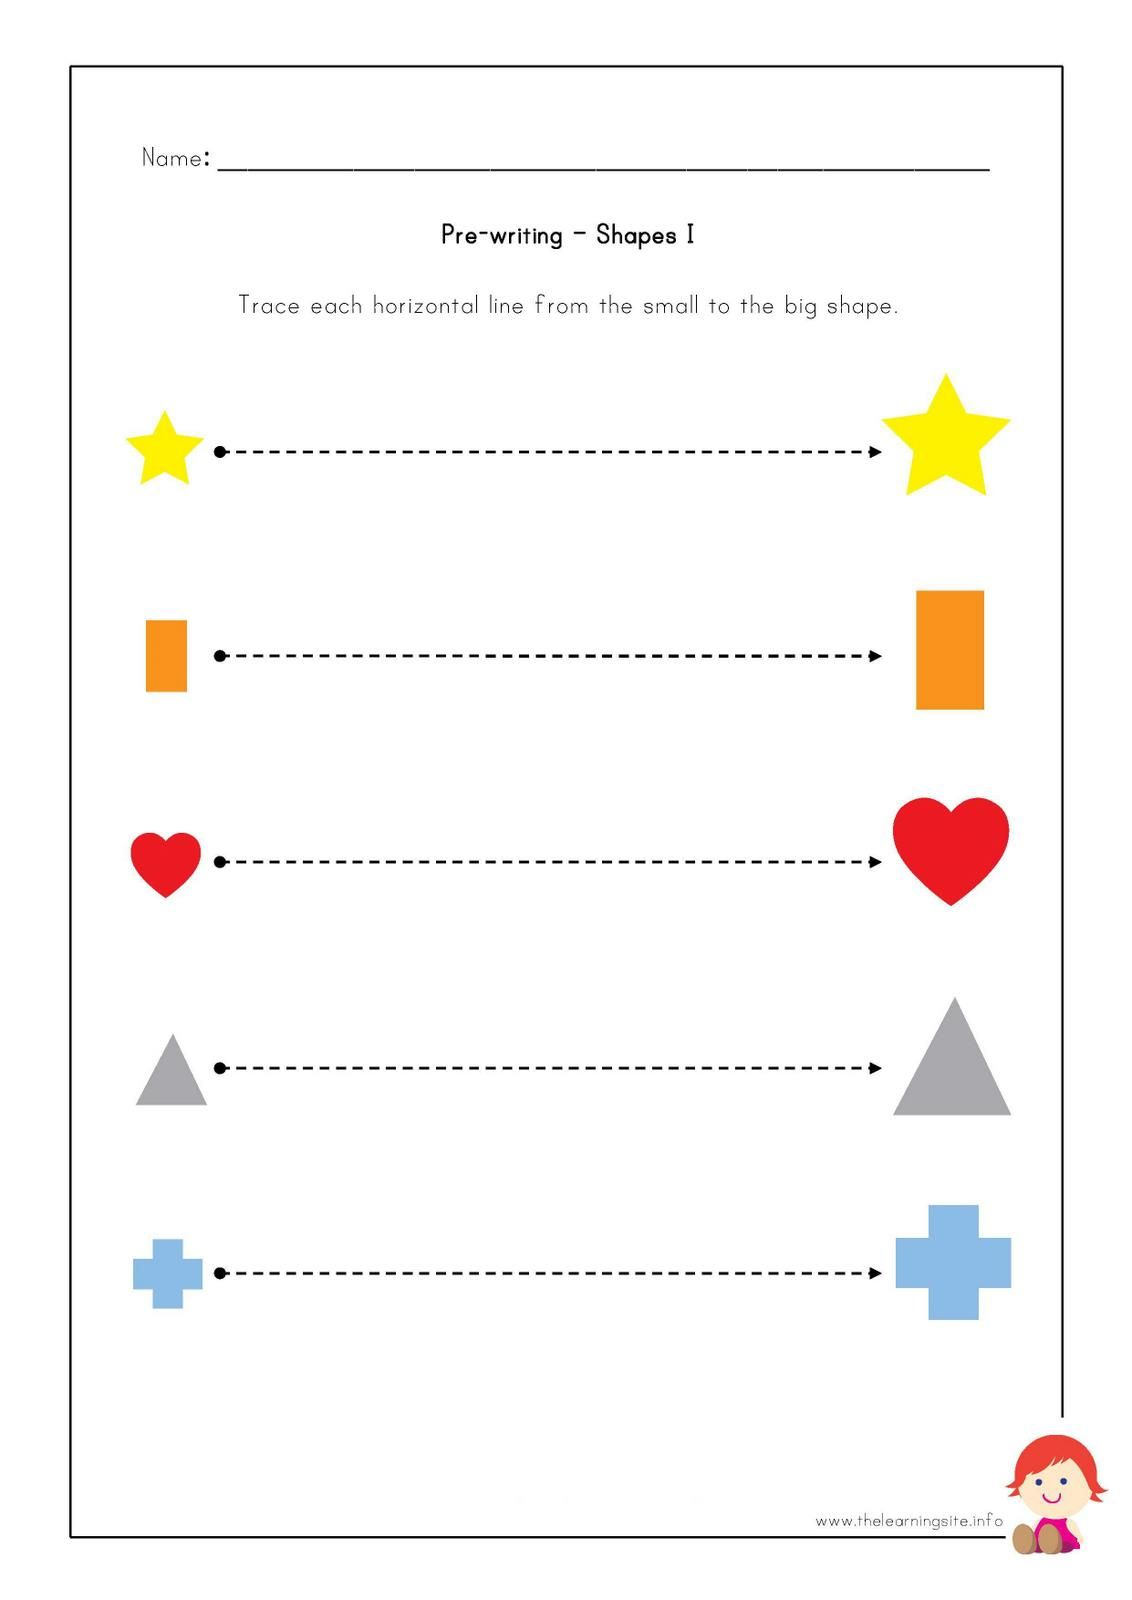 worksheet Pre Writing Strokes Worksheets the learning site pre writing worksheets shapes homeschool shapes